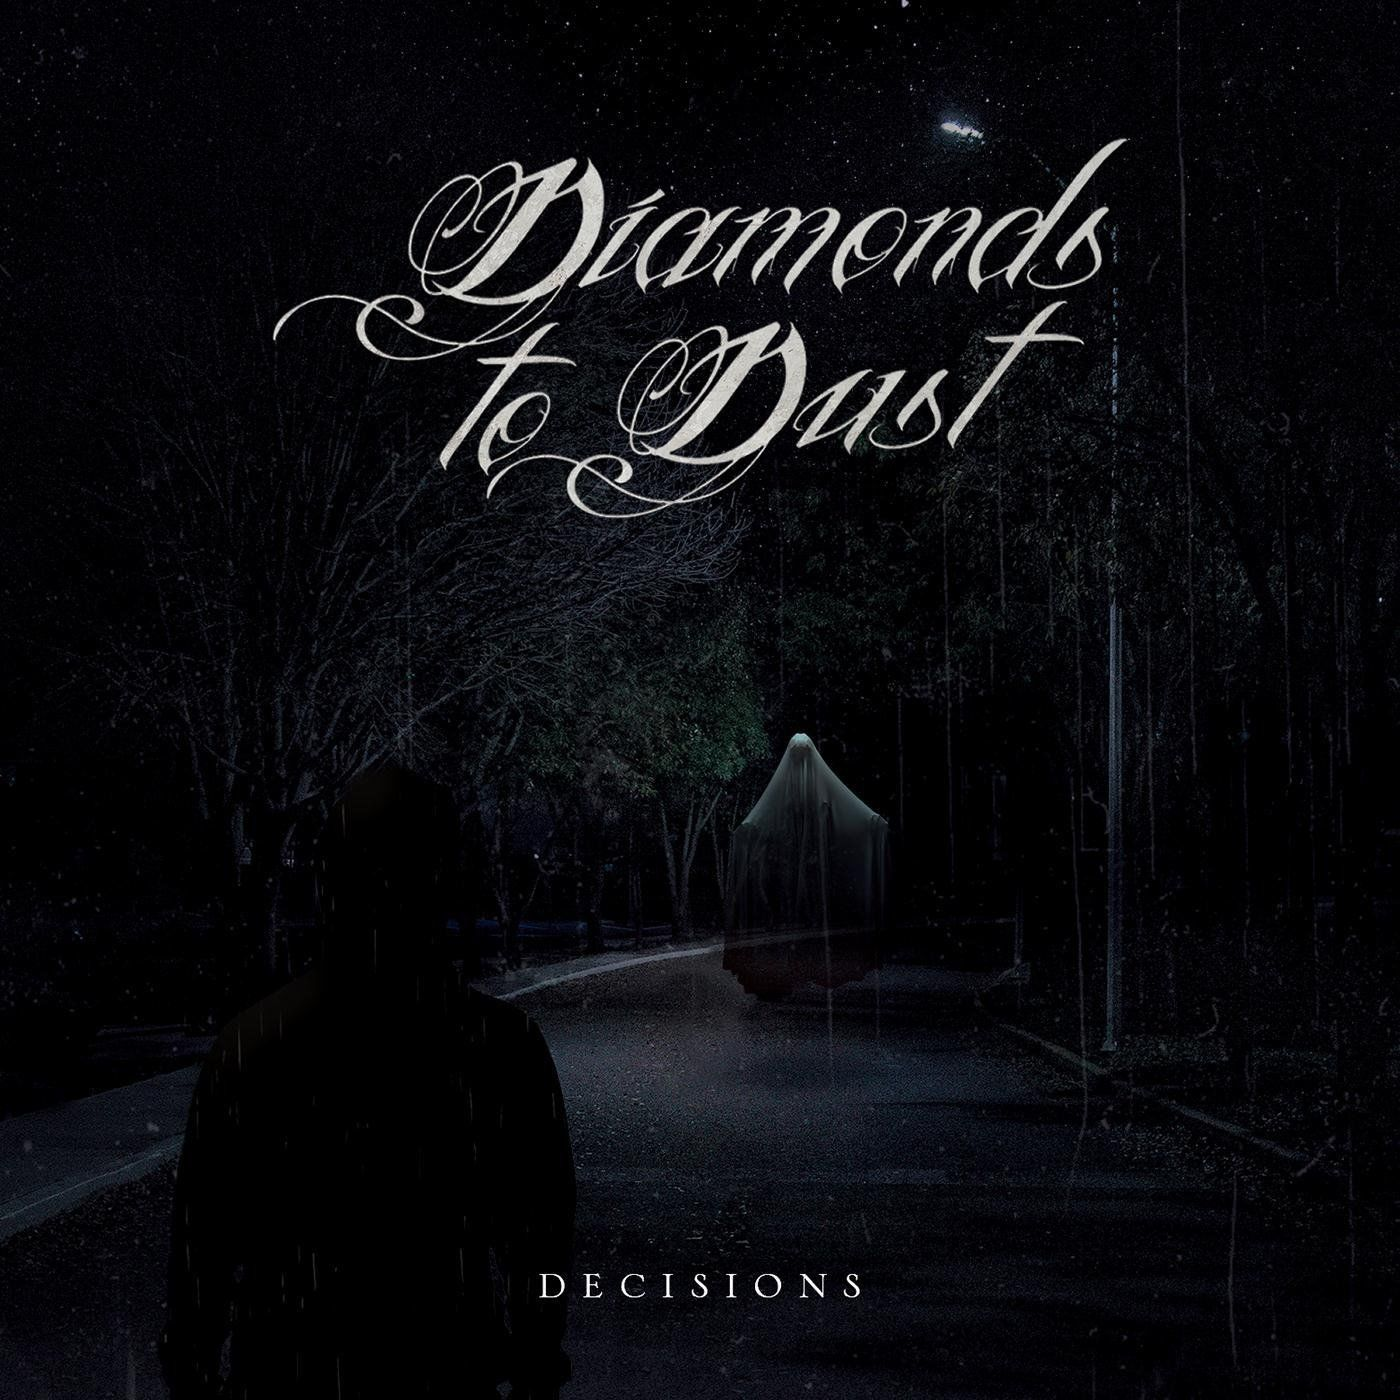 Diamonds to Dust - Decisions [EP] (2020)